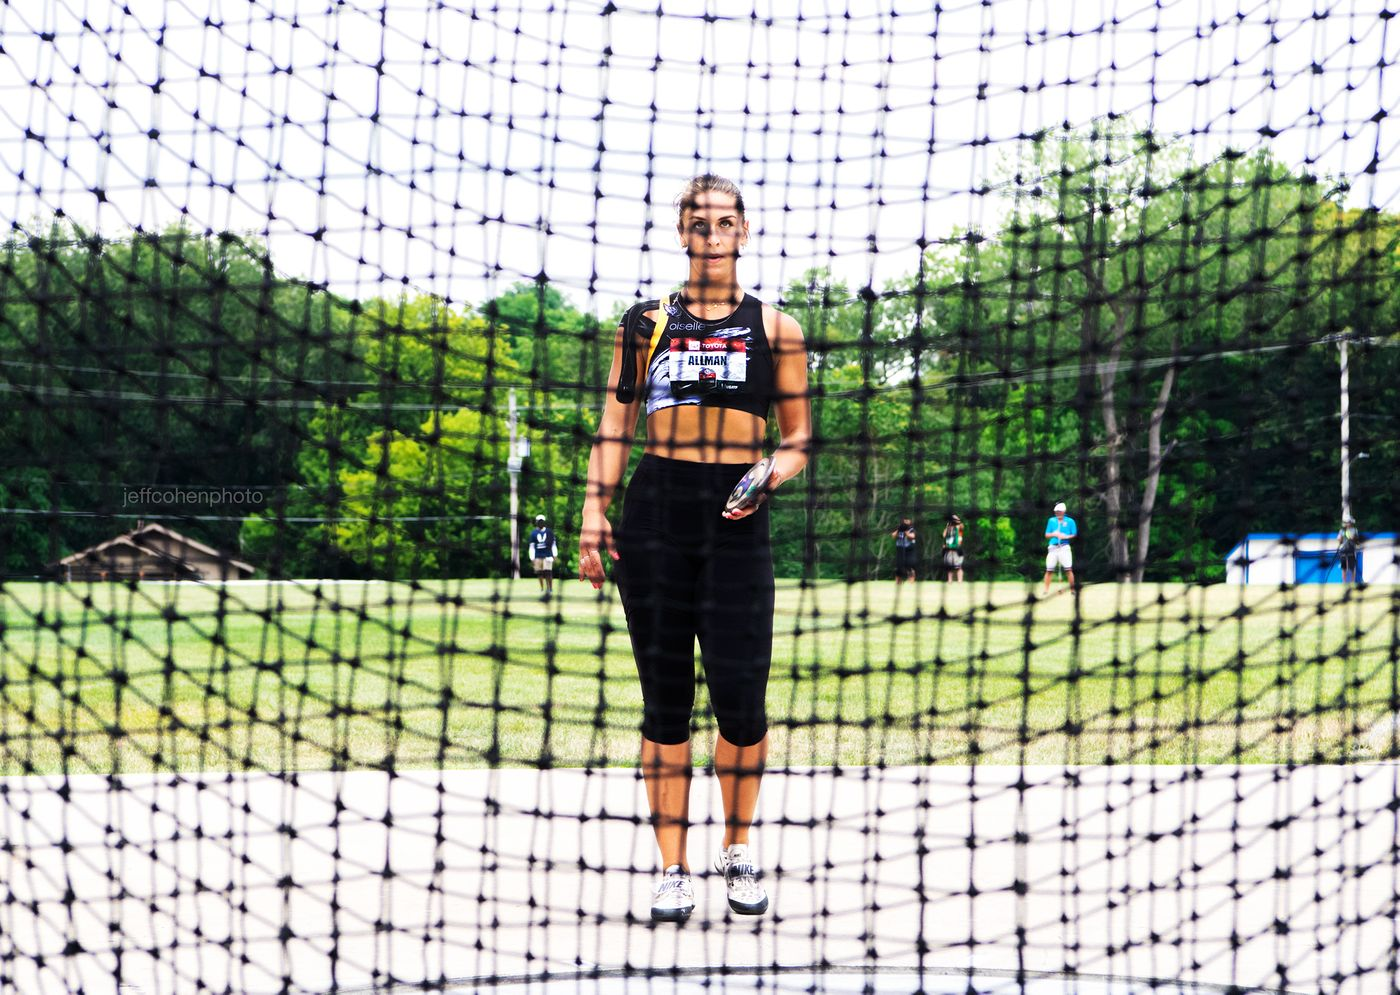 2019-USATF-Outdoor-Champs-day-4-allman-discus-w-5602---jeff-cohen-photo--web.jpg